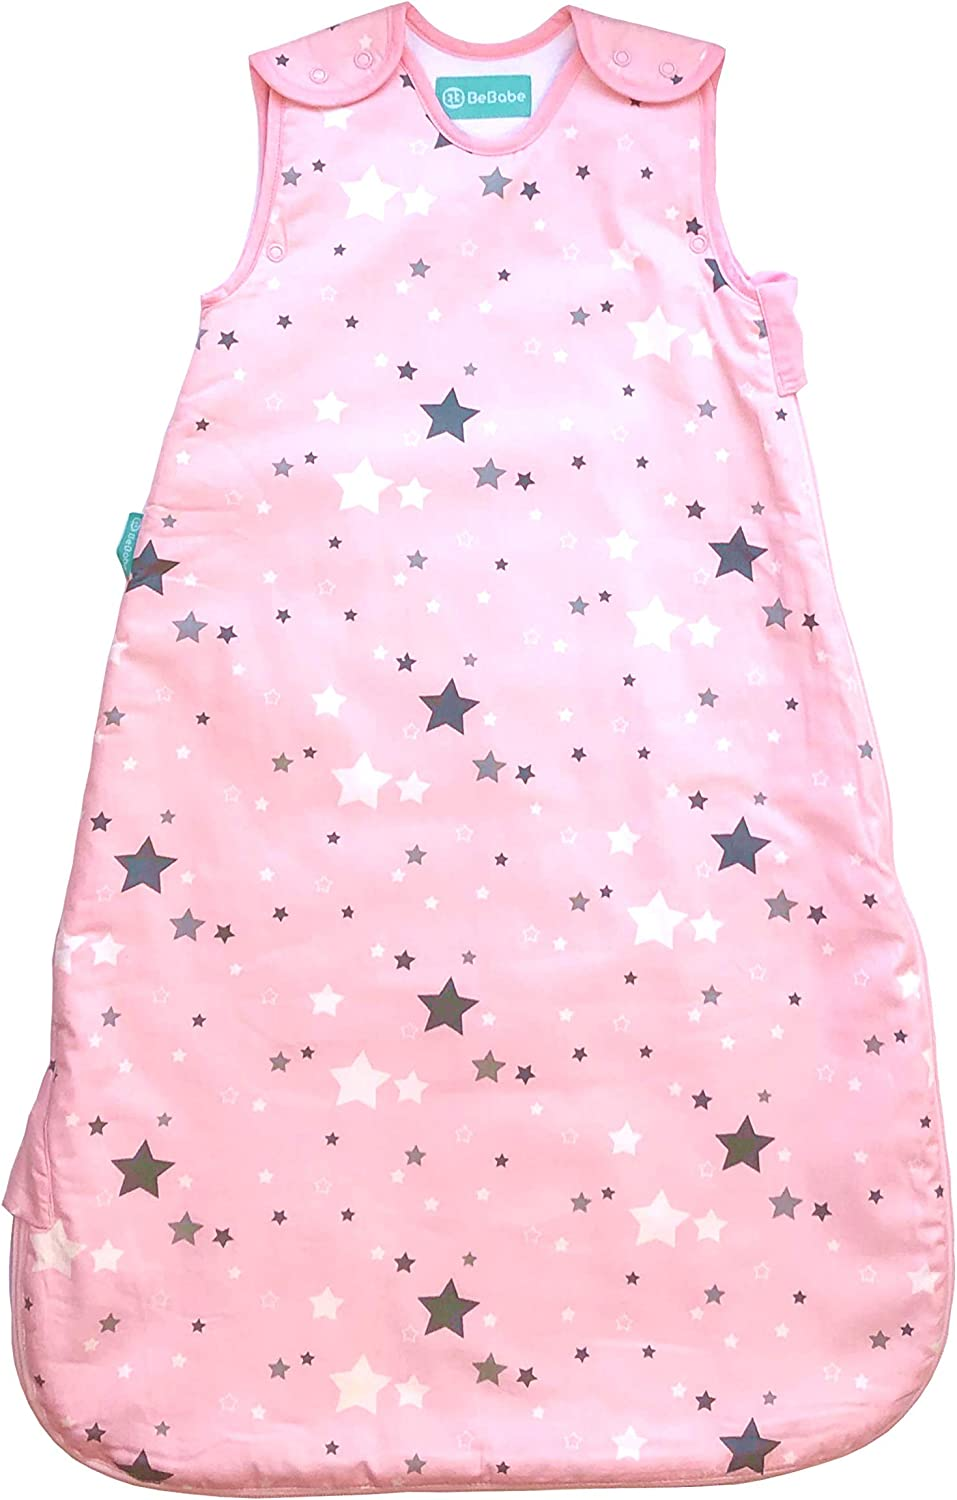 Baby Girl Be Babe Baby Sleeping Bag 1 tog Two-Way Zip Opening Pink Star Baby Blanket for Cots Cribs and Travel Free Muslin 50cmx50cm 6-18 Months Baby Sleep Bag for Newborn